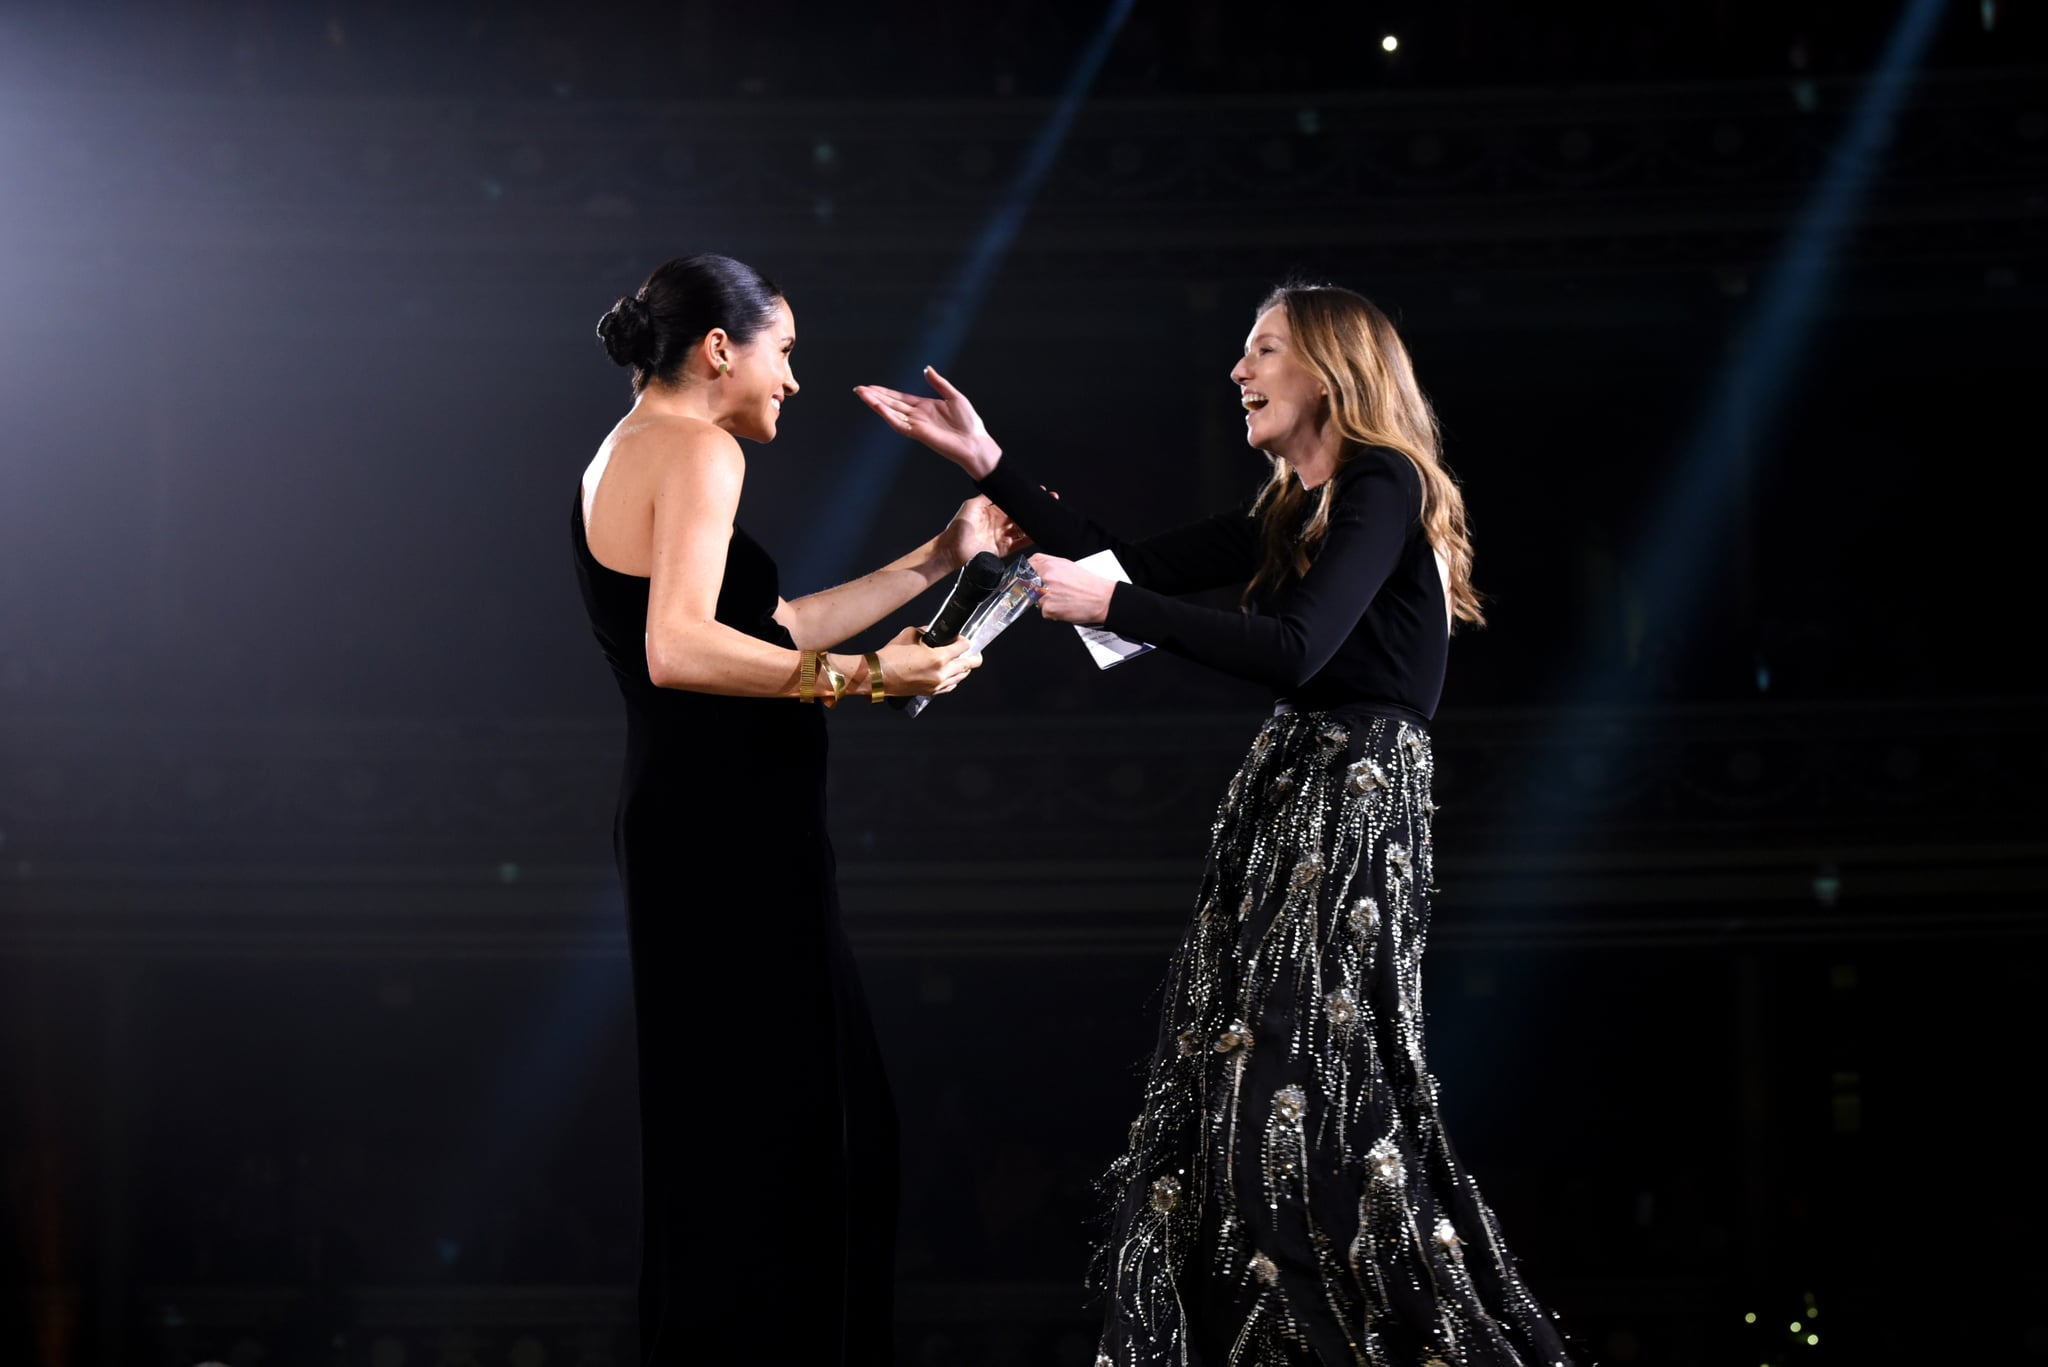 LONDON, ENGLAND - DECEMBER 10:  Meghan, Duchess of Sussex presents the award for British Designer of the Year Womenswear Award to Clare Waight Keller for Givenchy during The Fashion Awards 2018 In Partnership With Swarovski at Royal Albert Hall on December 10, 2018 in London, England.  (Photo by Joe Maher/BFC/Getty Images)